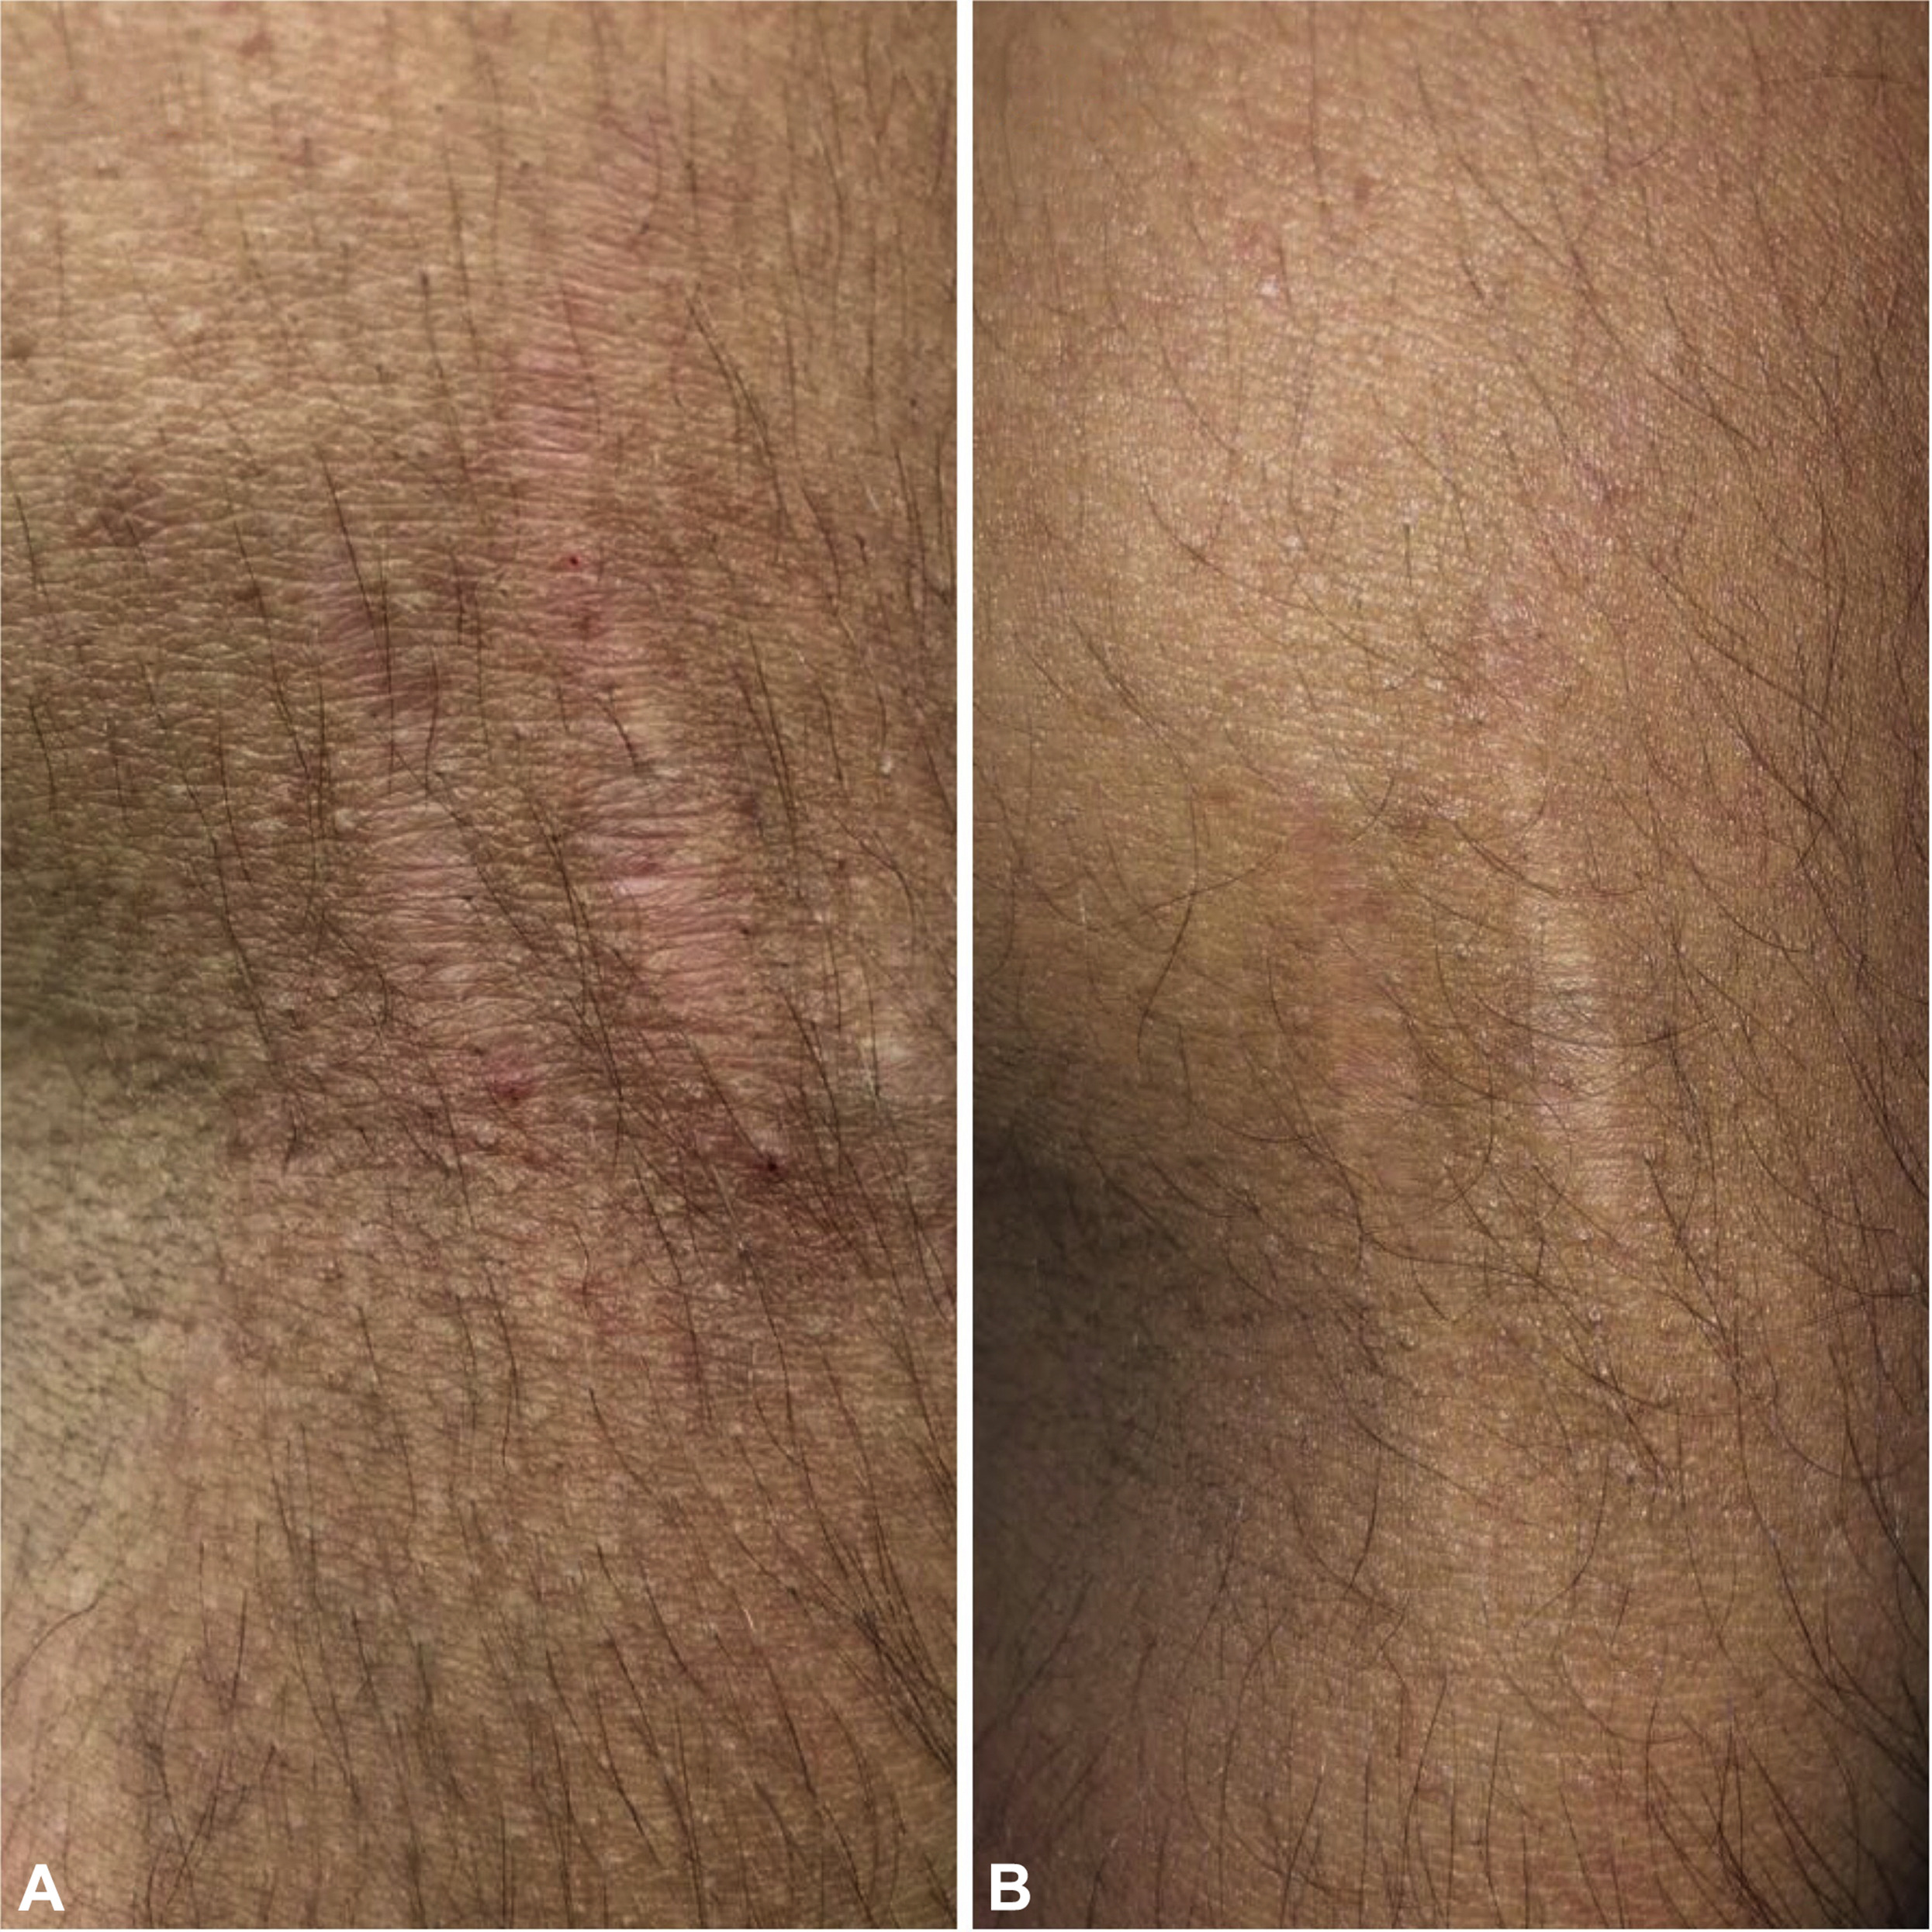 Striae due to bartonella is a stretch | American Academy of Dermatology